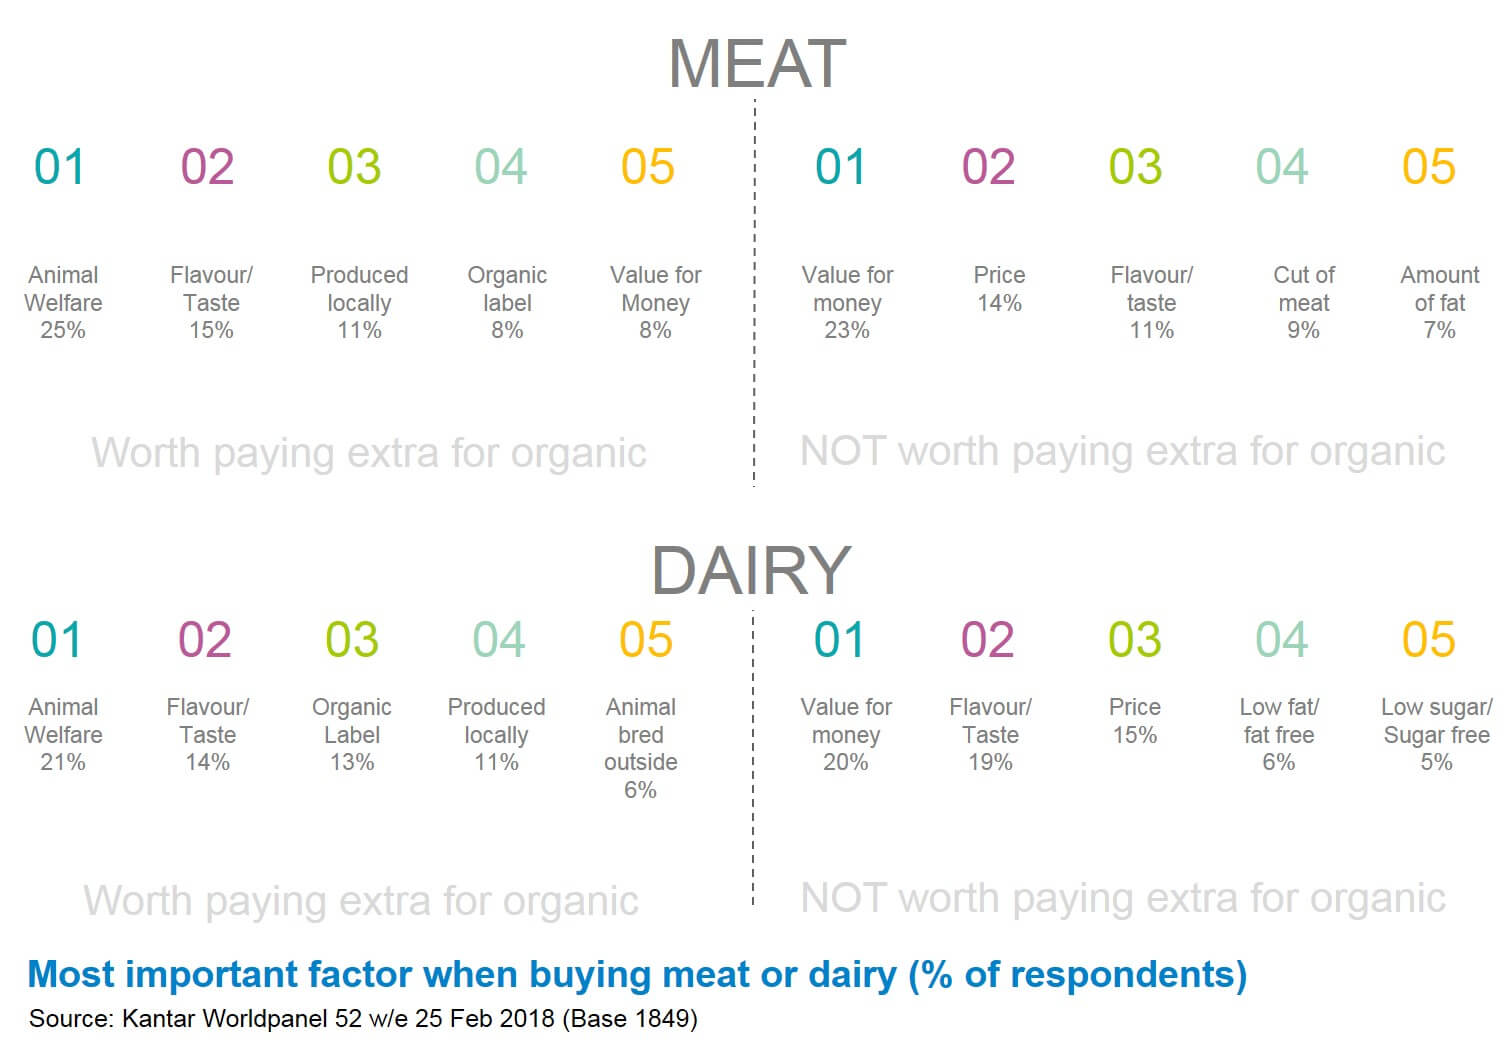 Image of most important factors considered when buying meat or dairy products